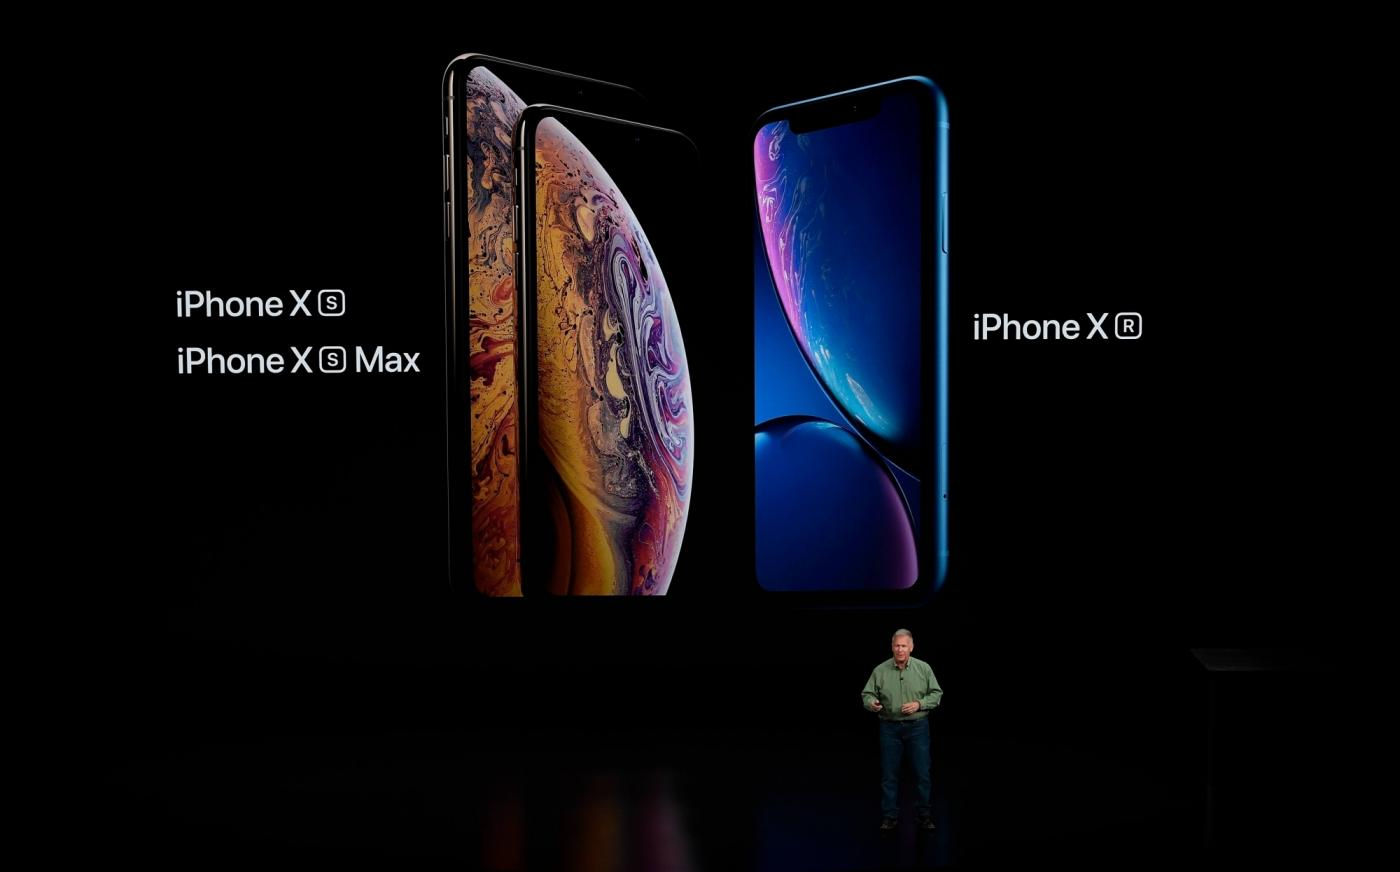 CUPERTINO, Sept. 13, 2018 (Xinhua) -- Phil Schiller, Apple's senior vice president of worldwide marketing, speaks about the newly released iphones at the Steve Jobs Theater during an event to announce new Apple products in Cupertino, the United States, on Sept. 12, 2018.(Xinhua/IANS) by .